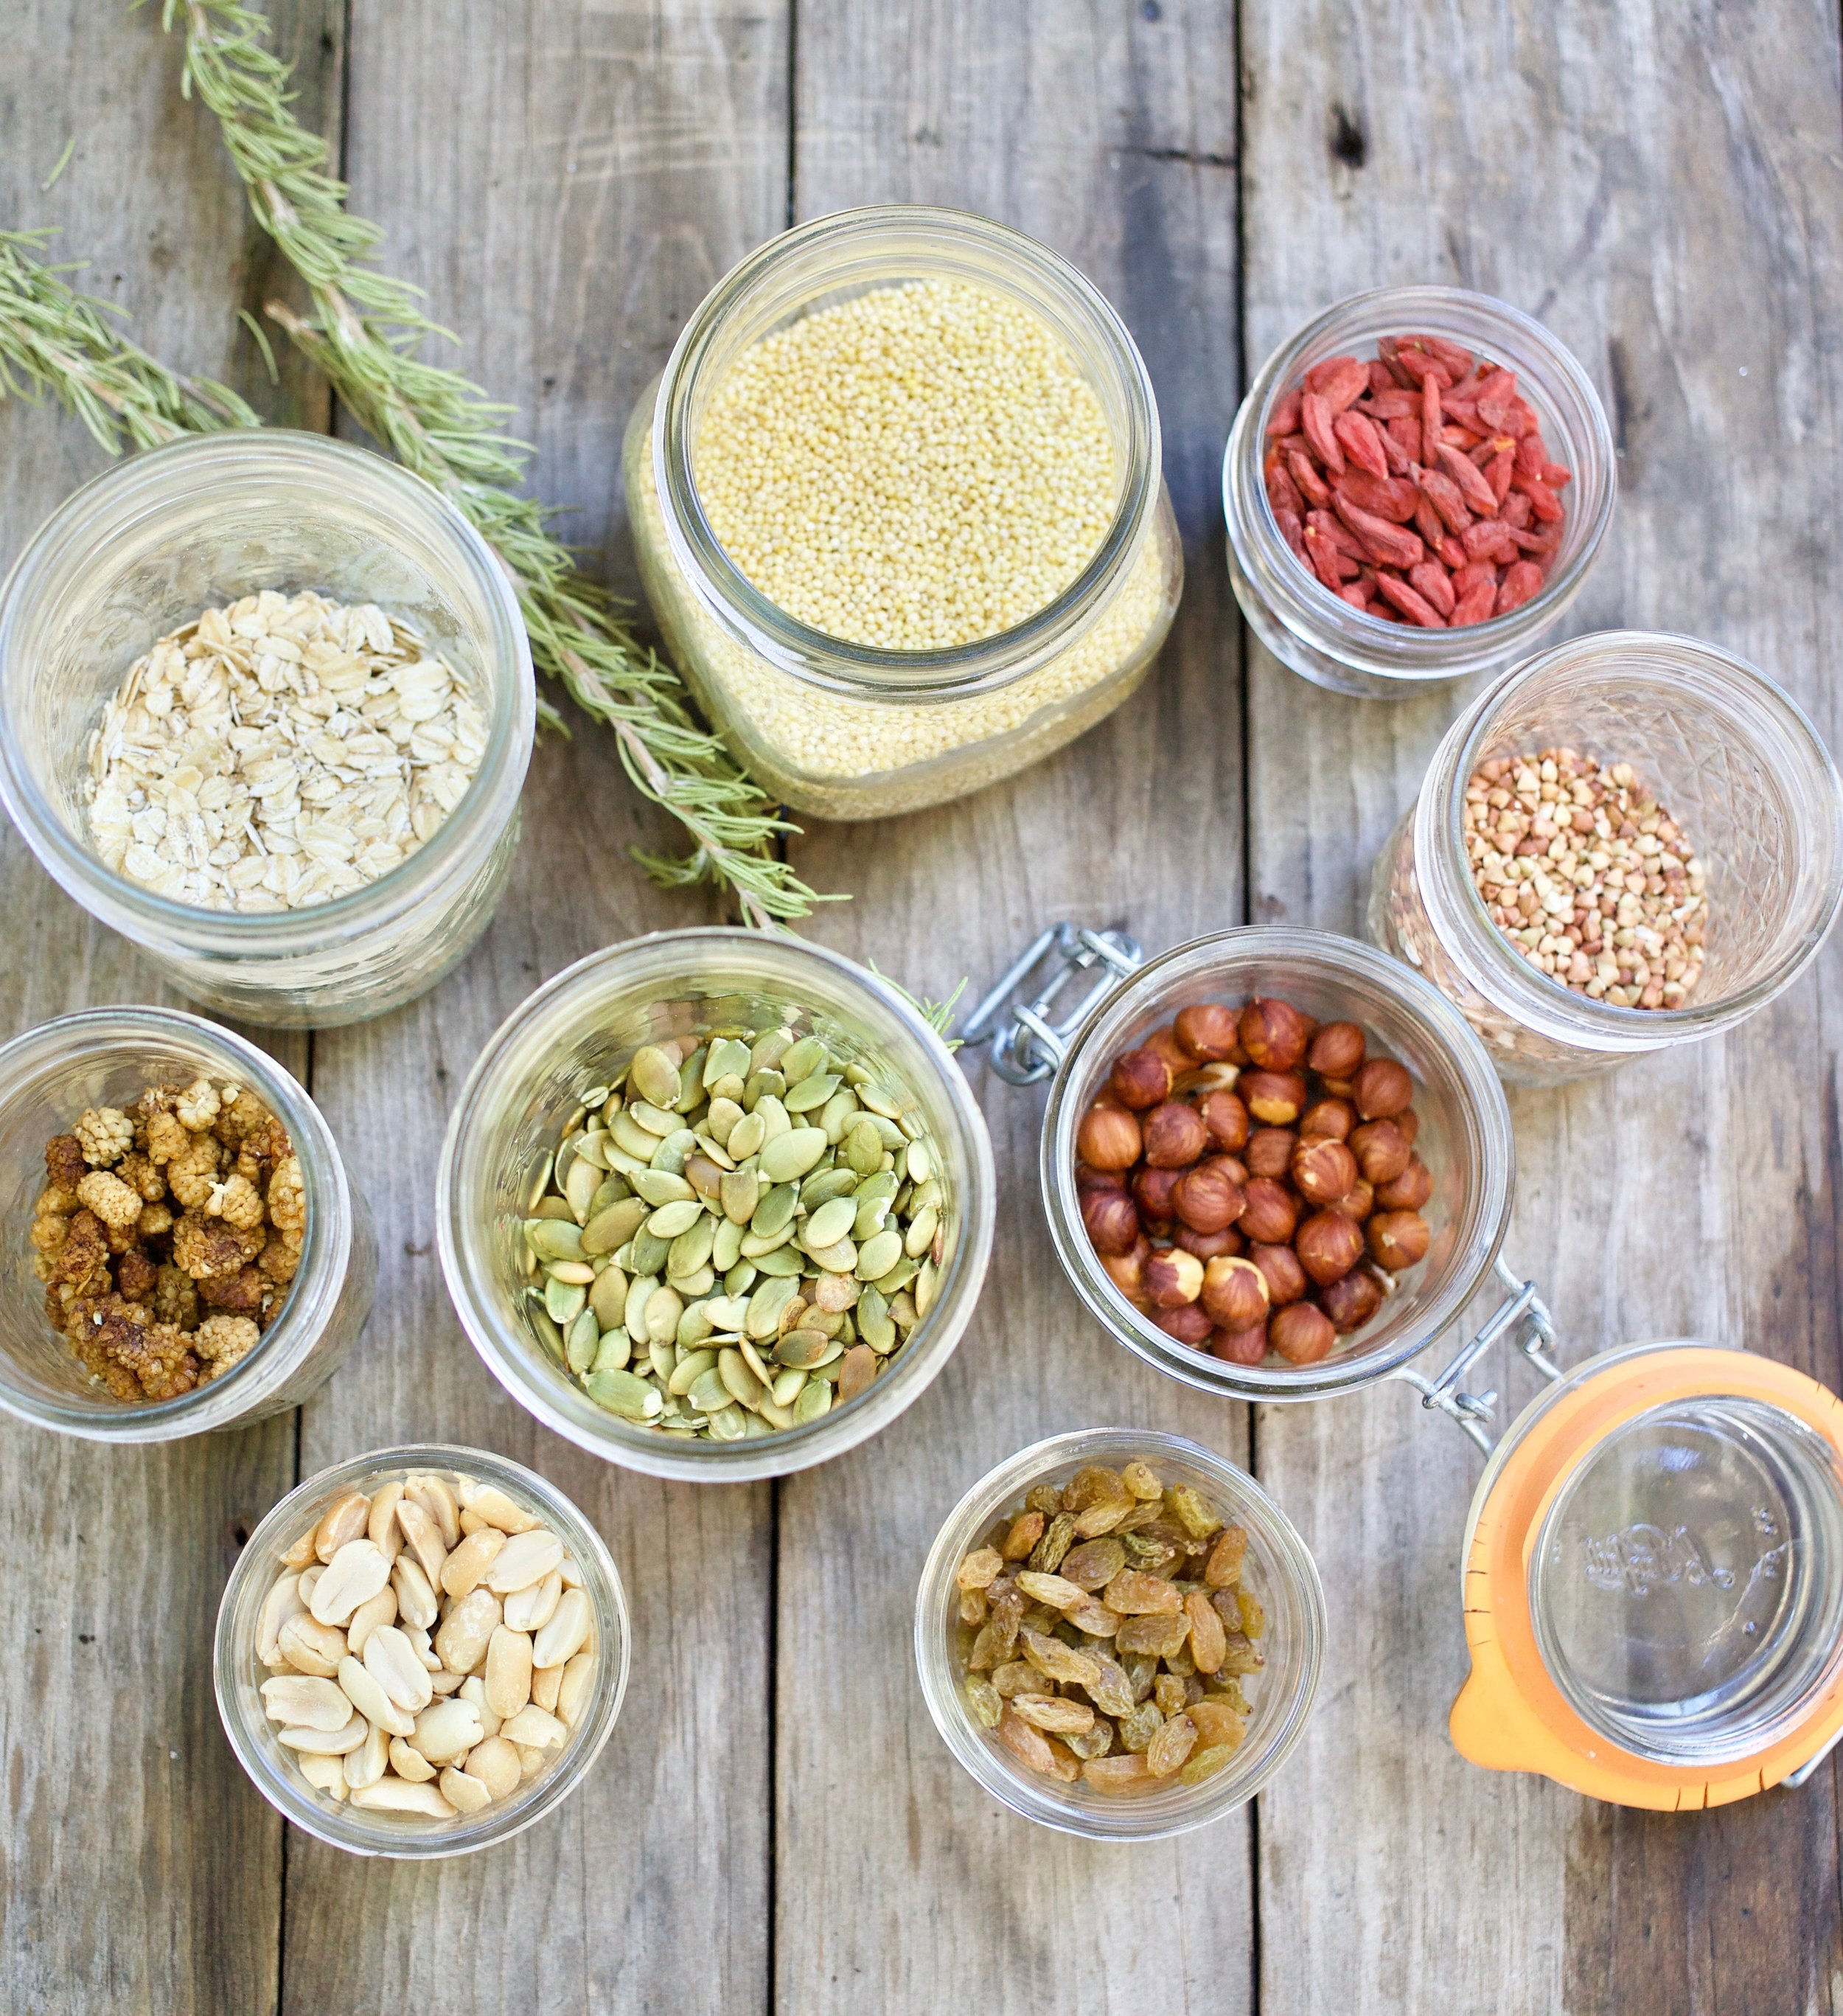 Store nuts, dried fruits, and spices in pretty mason jars, but remember to be mindful of what area of your kitchen will protect the nutritional value.